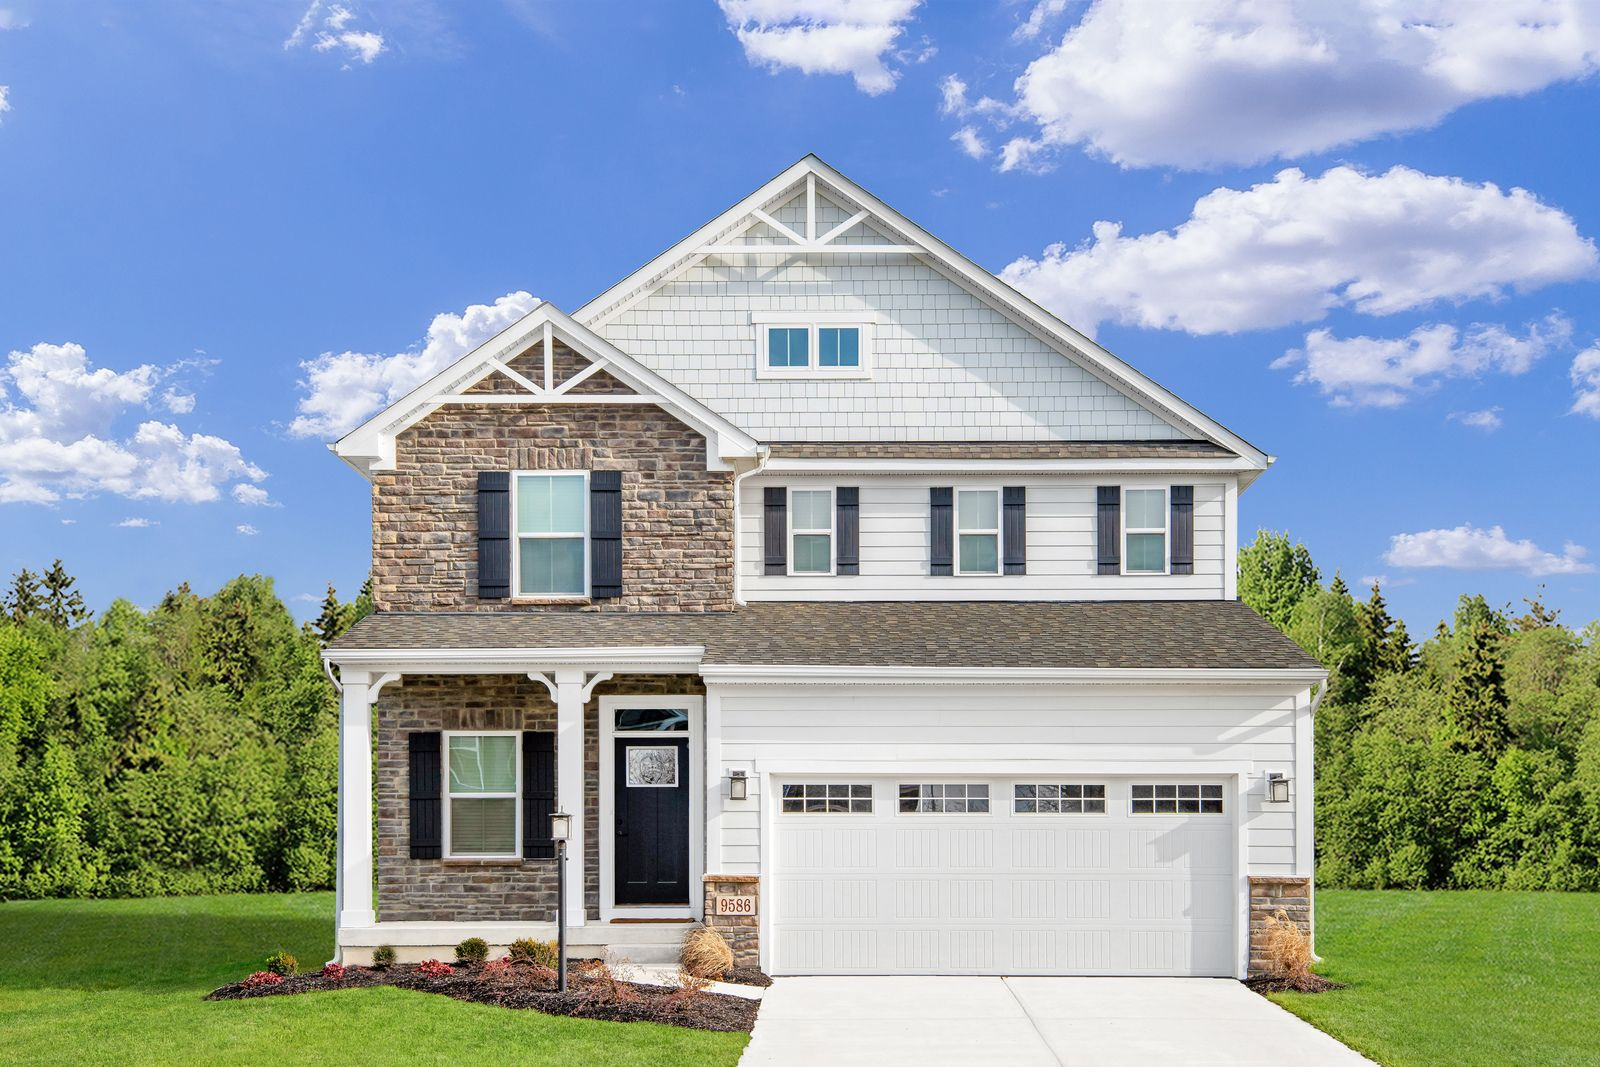 COME HOME TO CHARLOTTESVILLE'S HIGHLY SOUGHT-AFTER RIVERWOOD COMMUNITY, FROM THE $390s!:Coming Soon: 13 new cul-de-sac homesites!Be a VIP & be the first to buy your new home w/ finished basement & 2-car garage included, steps to the Rivanna River. Plus enjoy the brand new community park